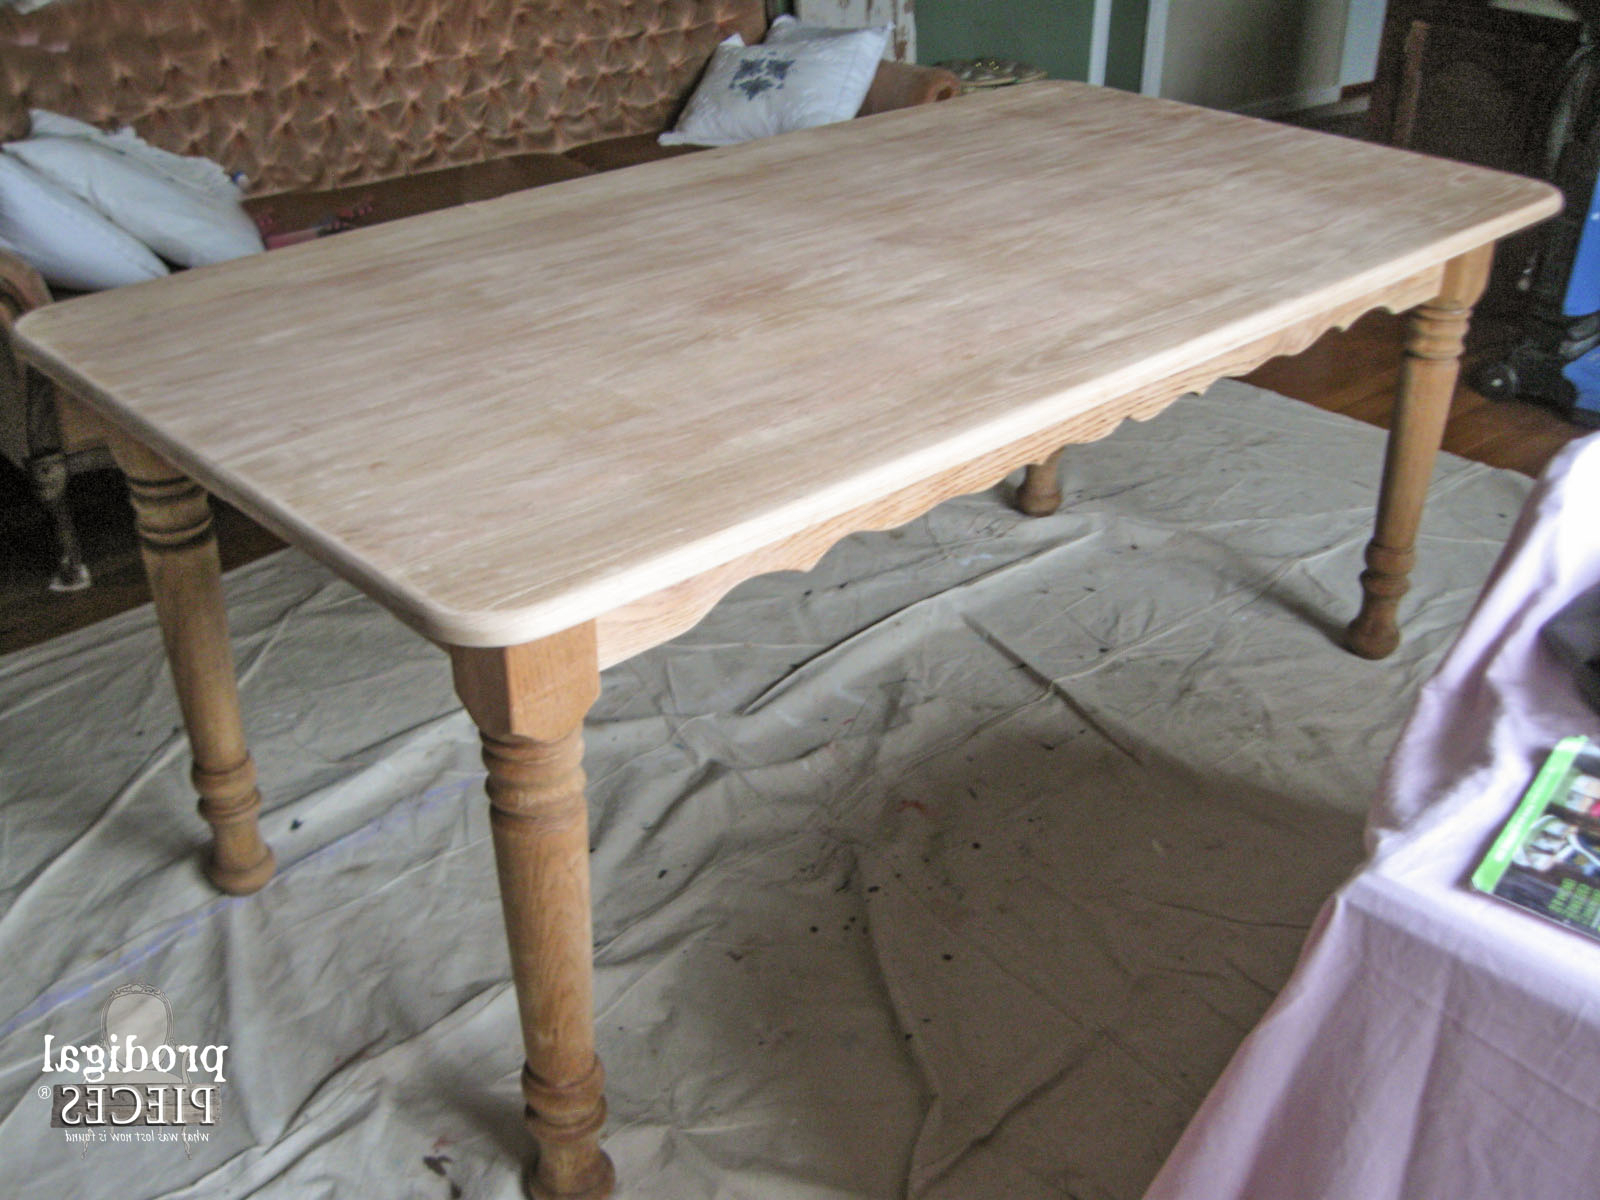 Whitewashed (Or Limewashed) Wood – Prodigal Pieces Regarding Latest Handmade Whitewashed Stripped Wood Tables (View 18 of 20)